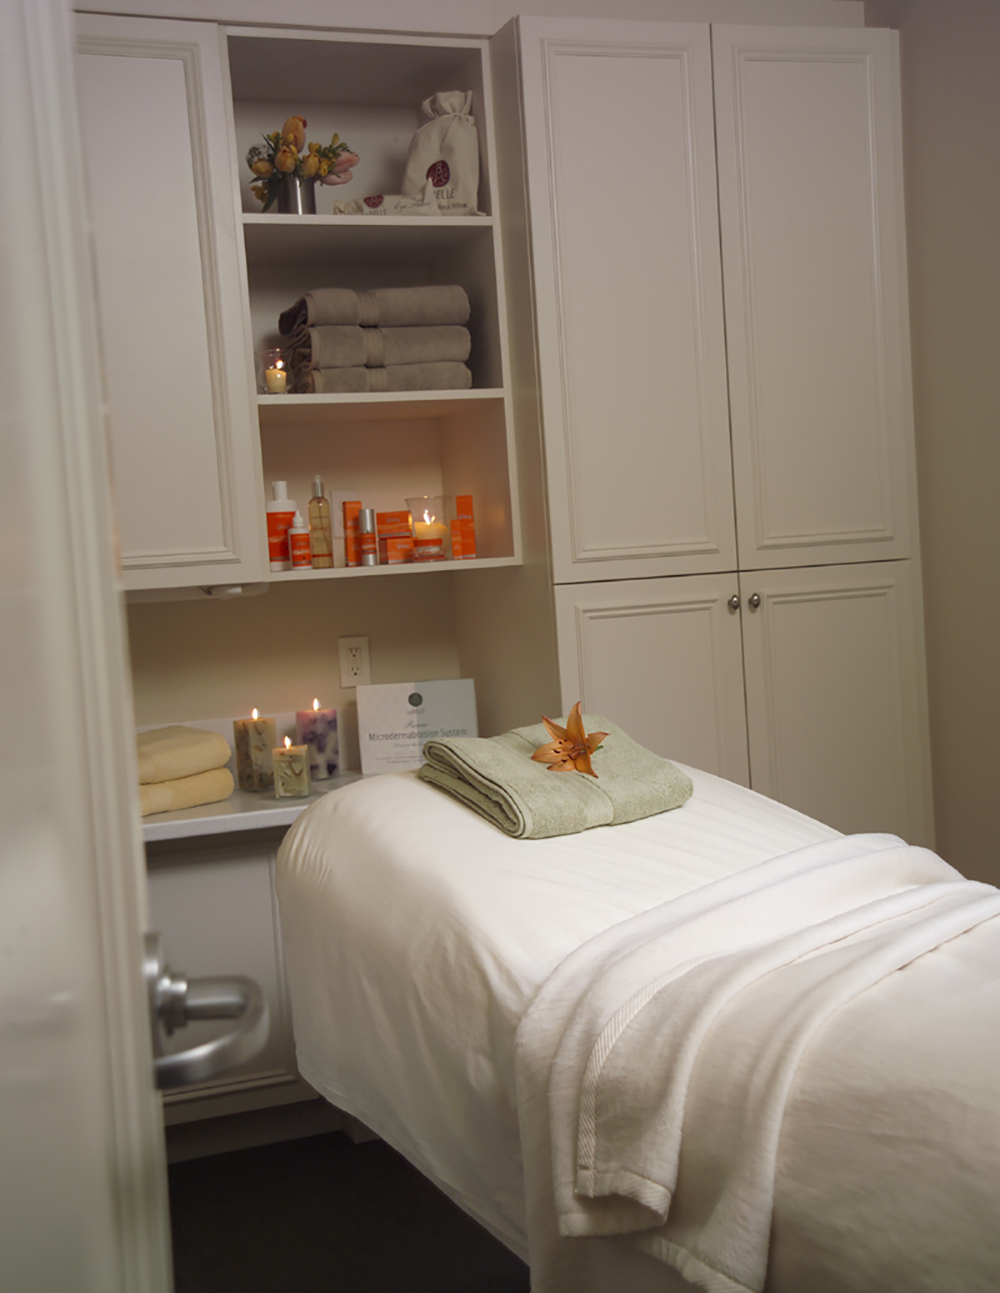 A treatment room at the Stanford location.